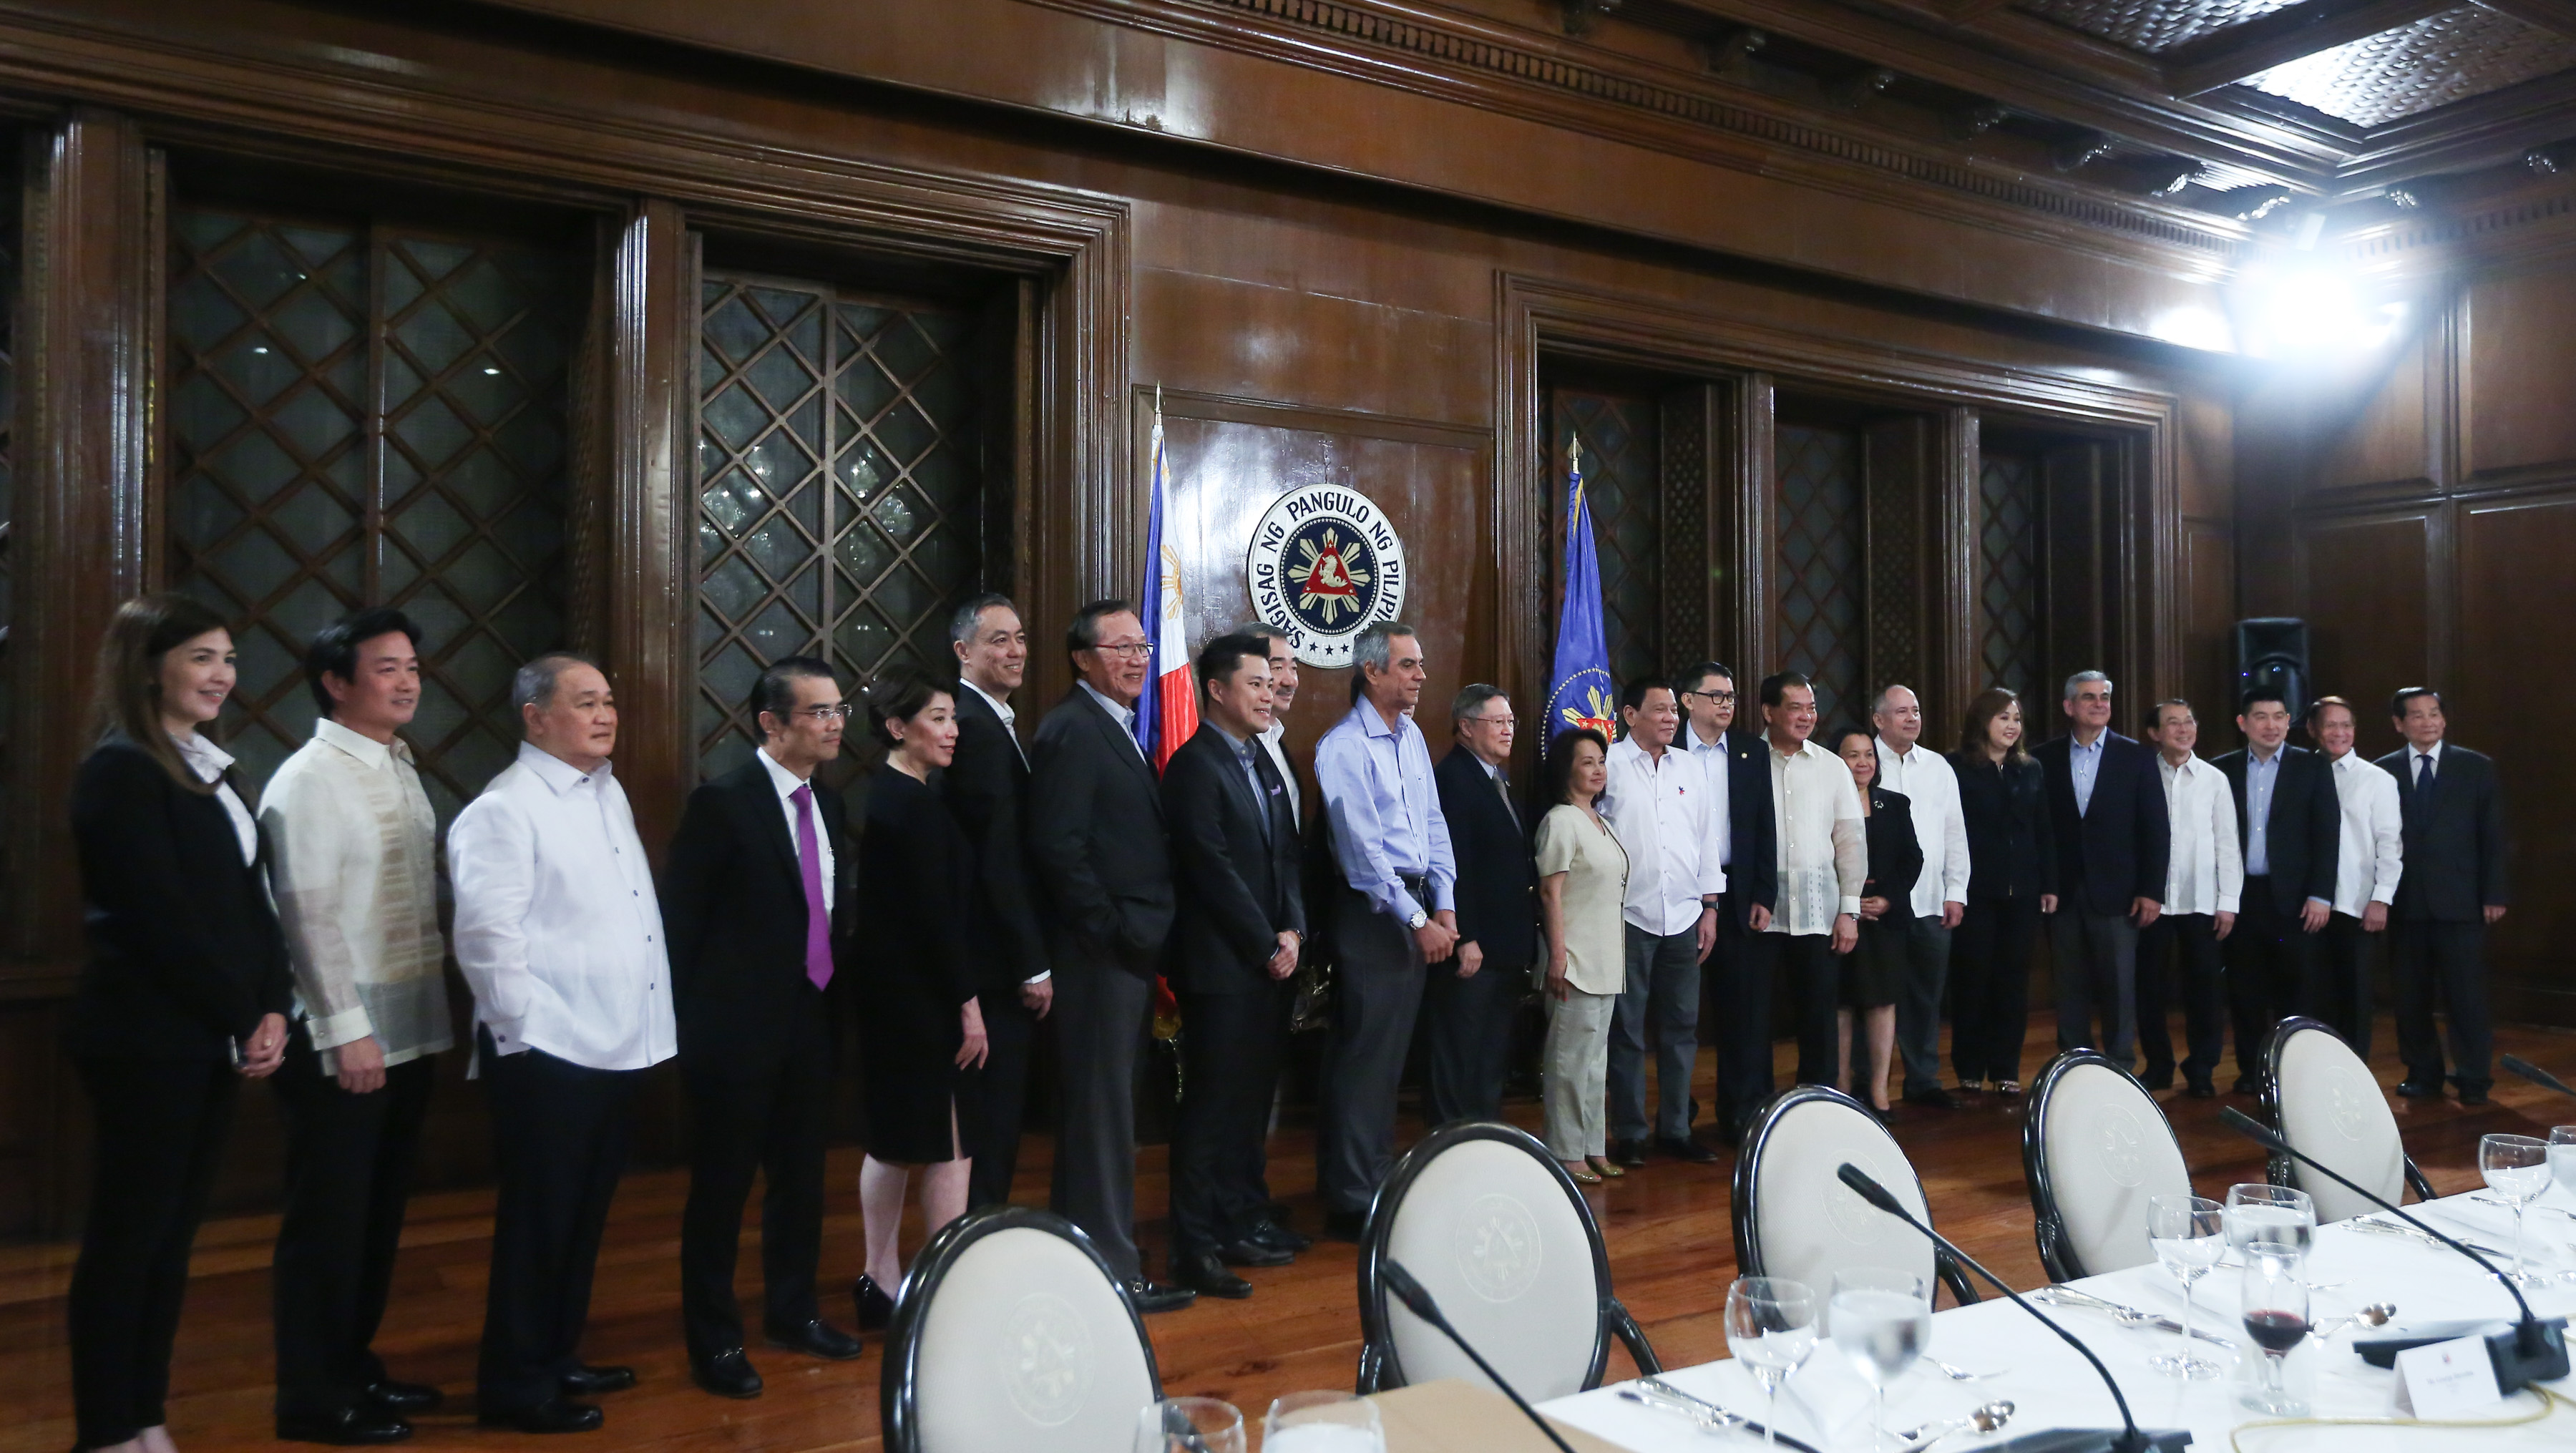 GROUP PHOTO. President Rodrigo Duterte and the top Philippine businessman pose for a photo following a meeting at the President's Hall in Malacanang on January 17, 2017. Photo from Presidential Photo